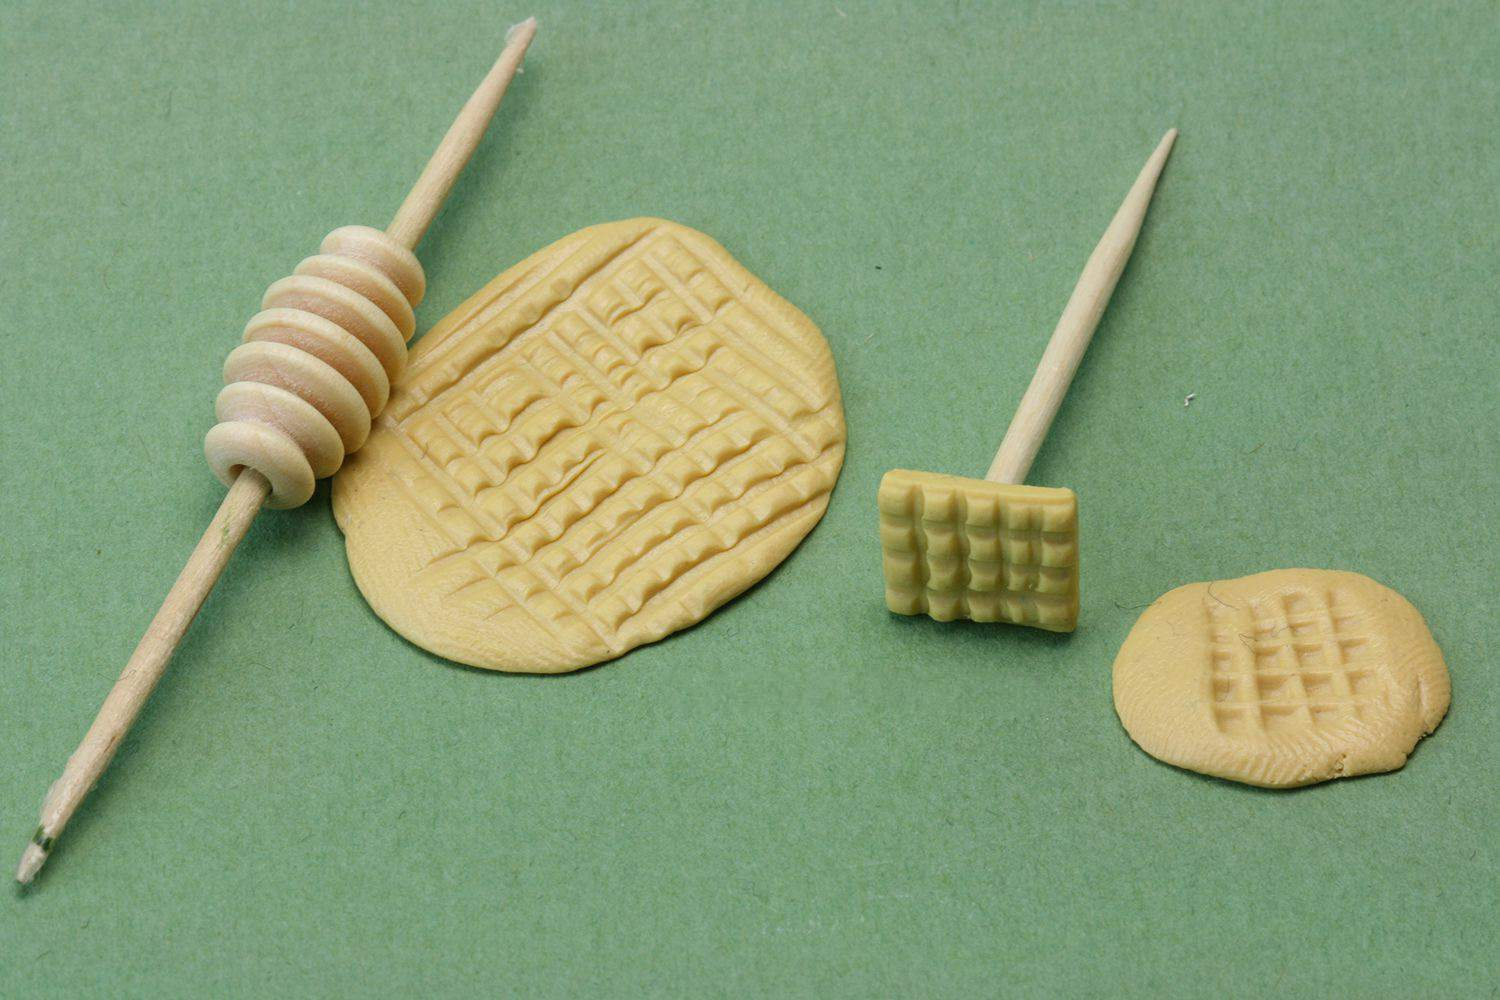 Ridged bead with a toothpick through the centre acts as a miniature rolling pin